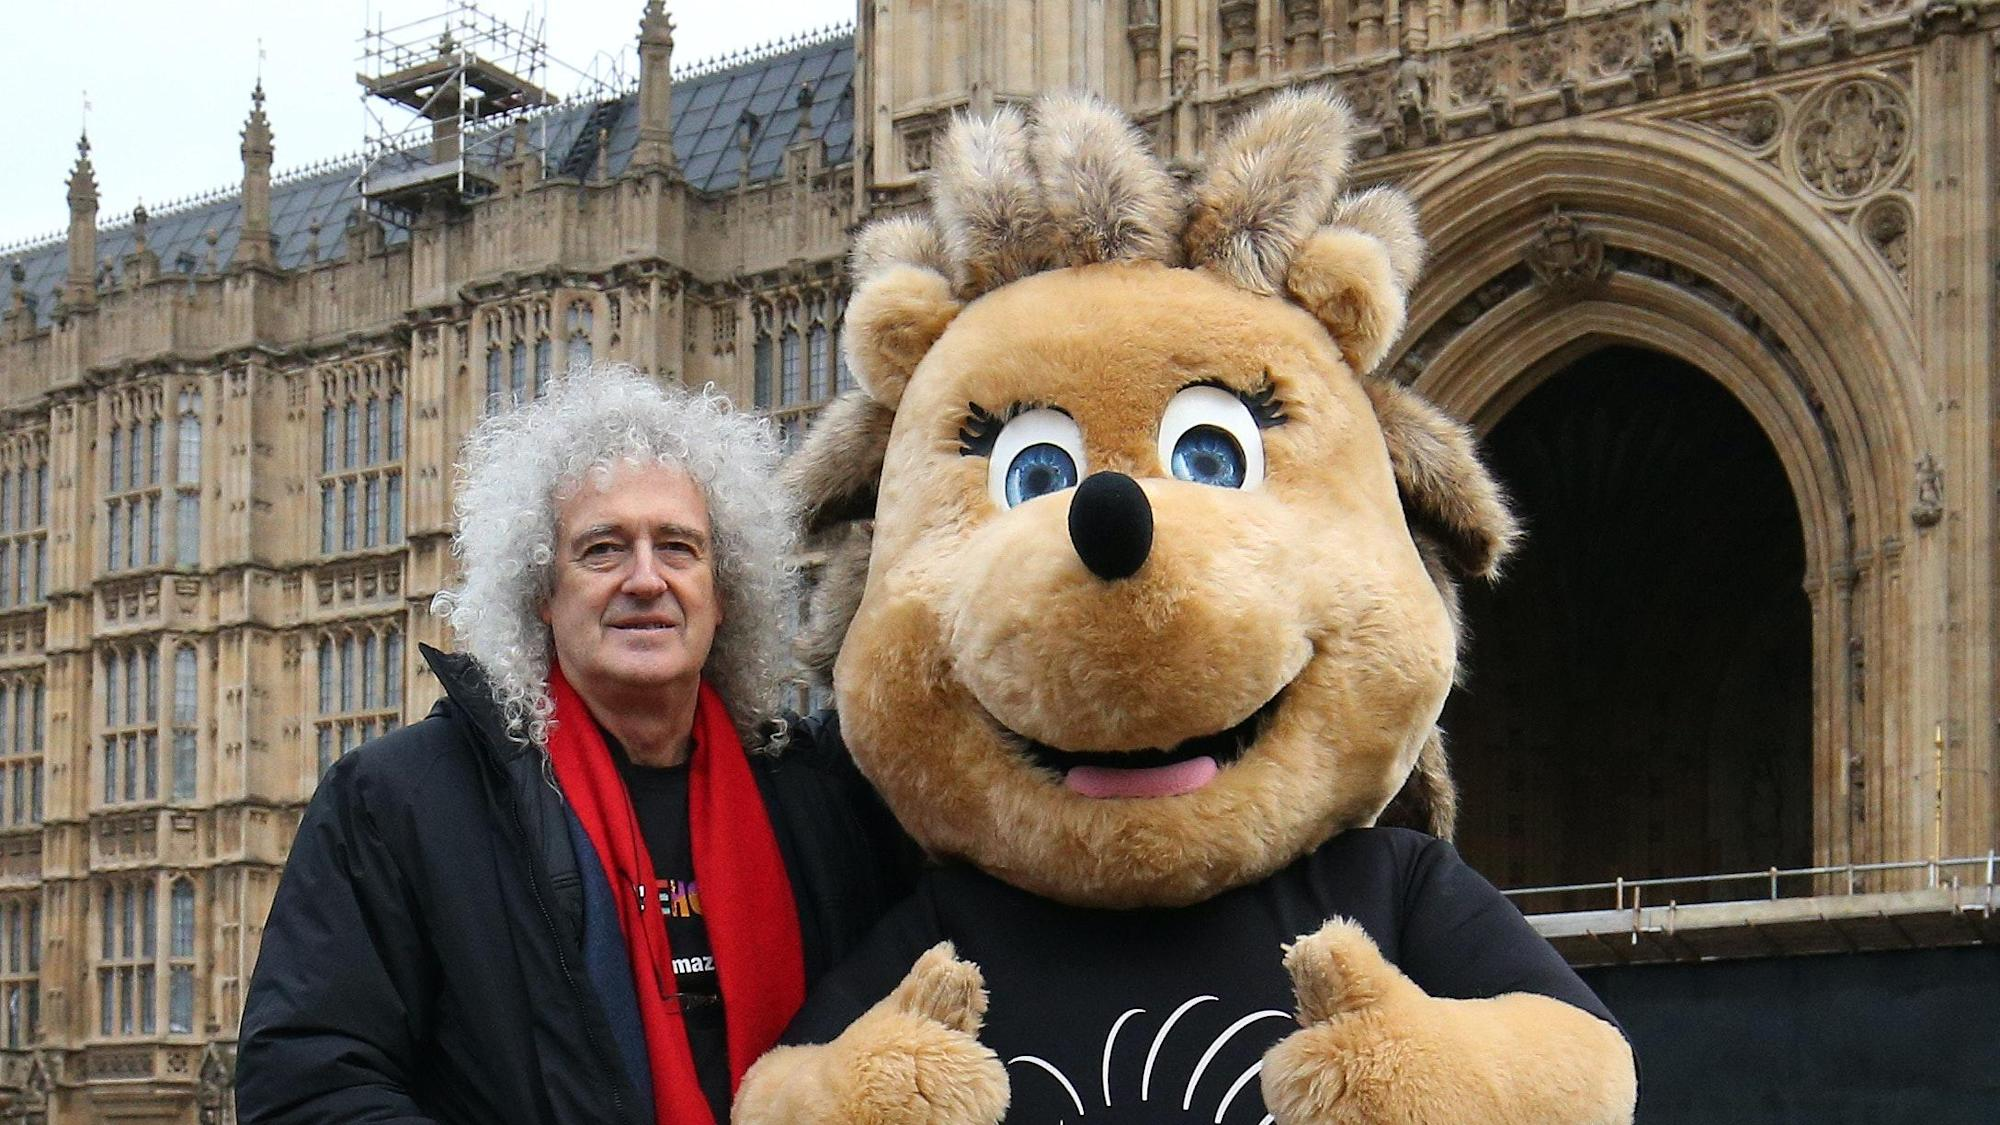 Sainsbury's axes plan to extend store into woodland after Brian May's campaign